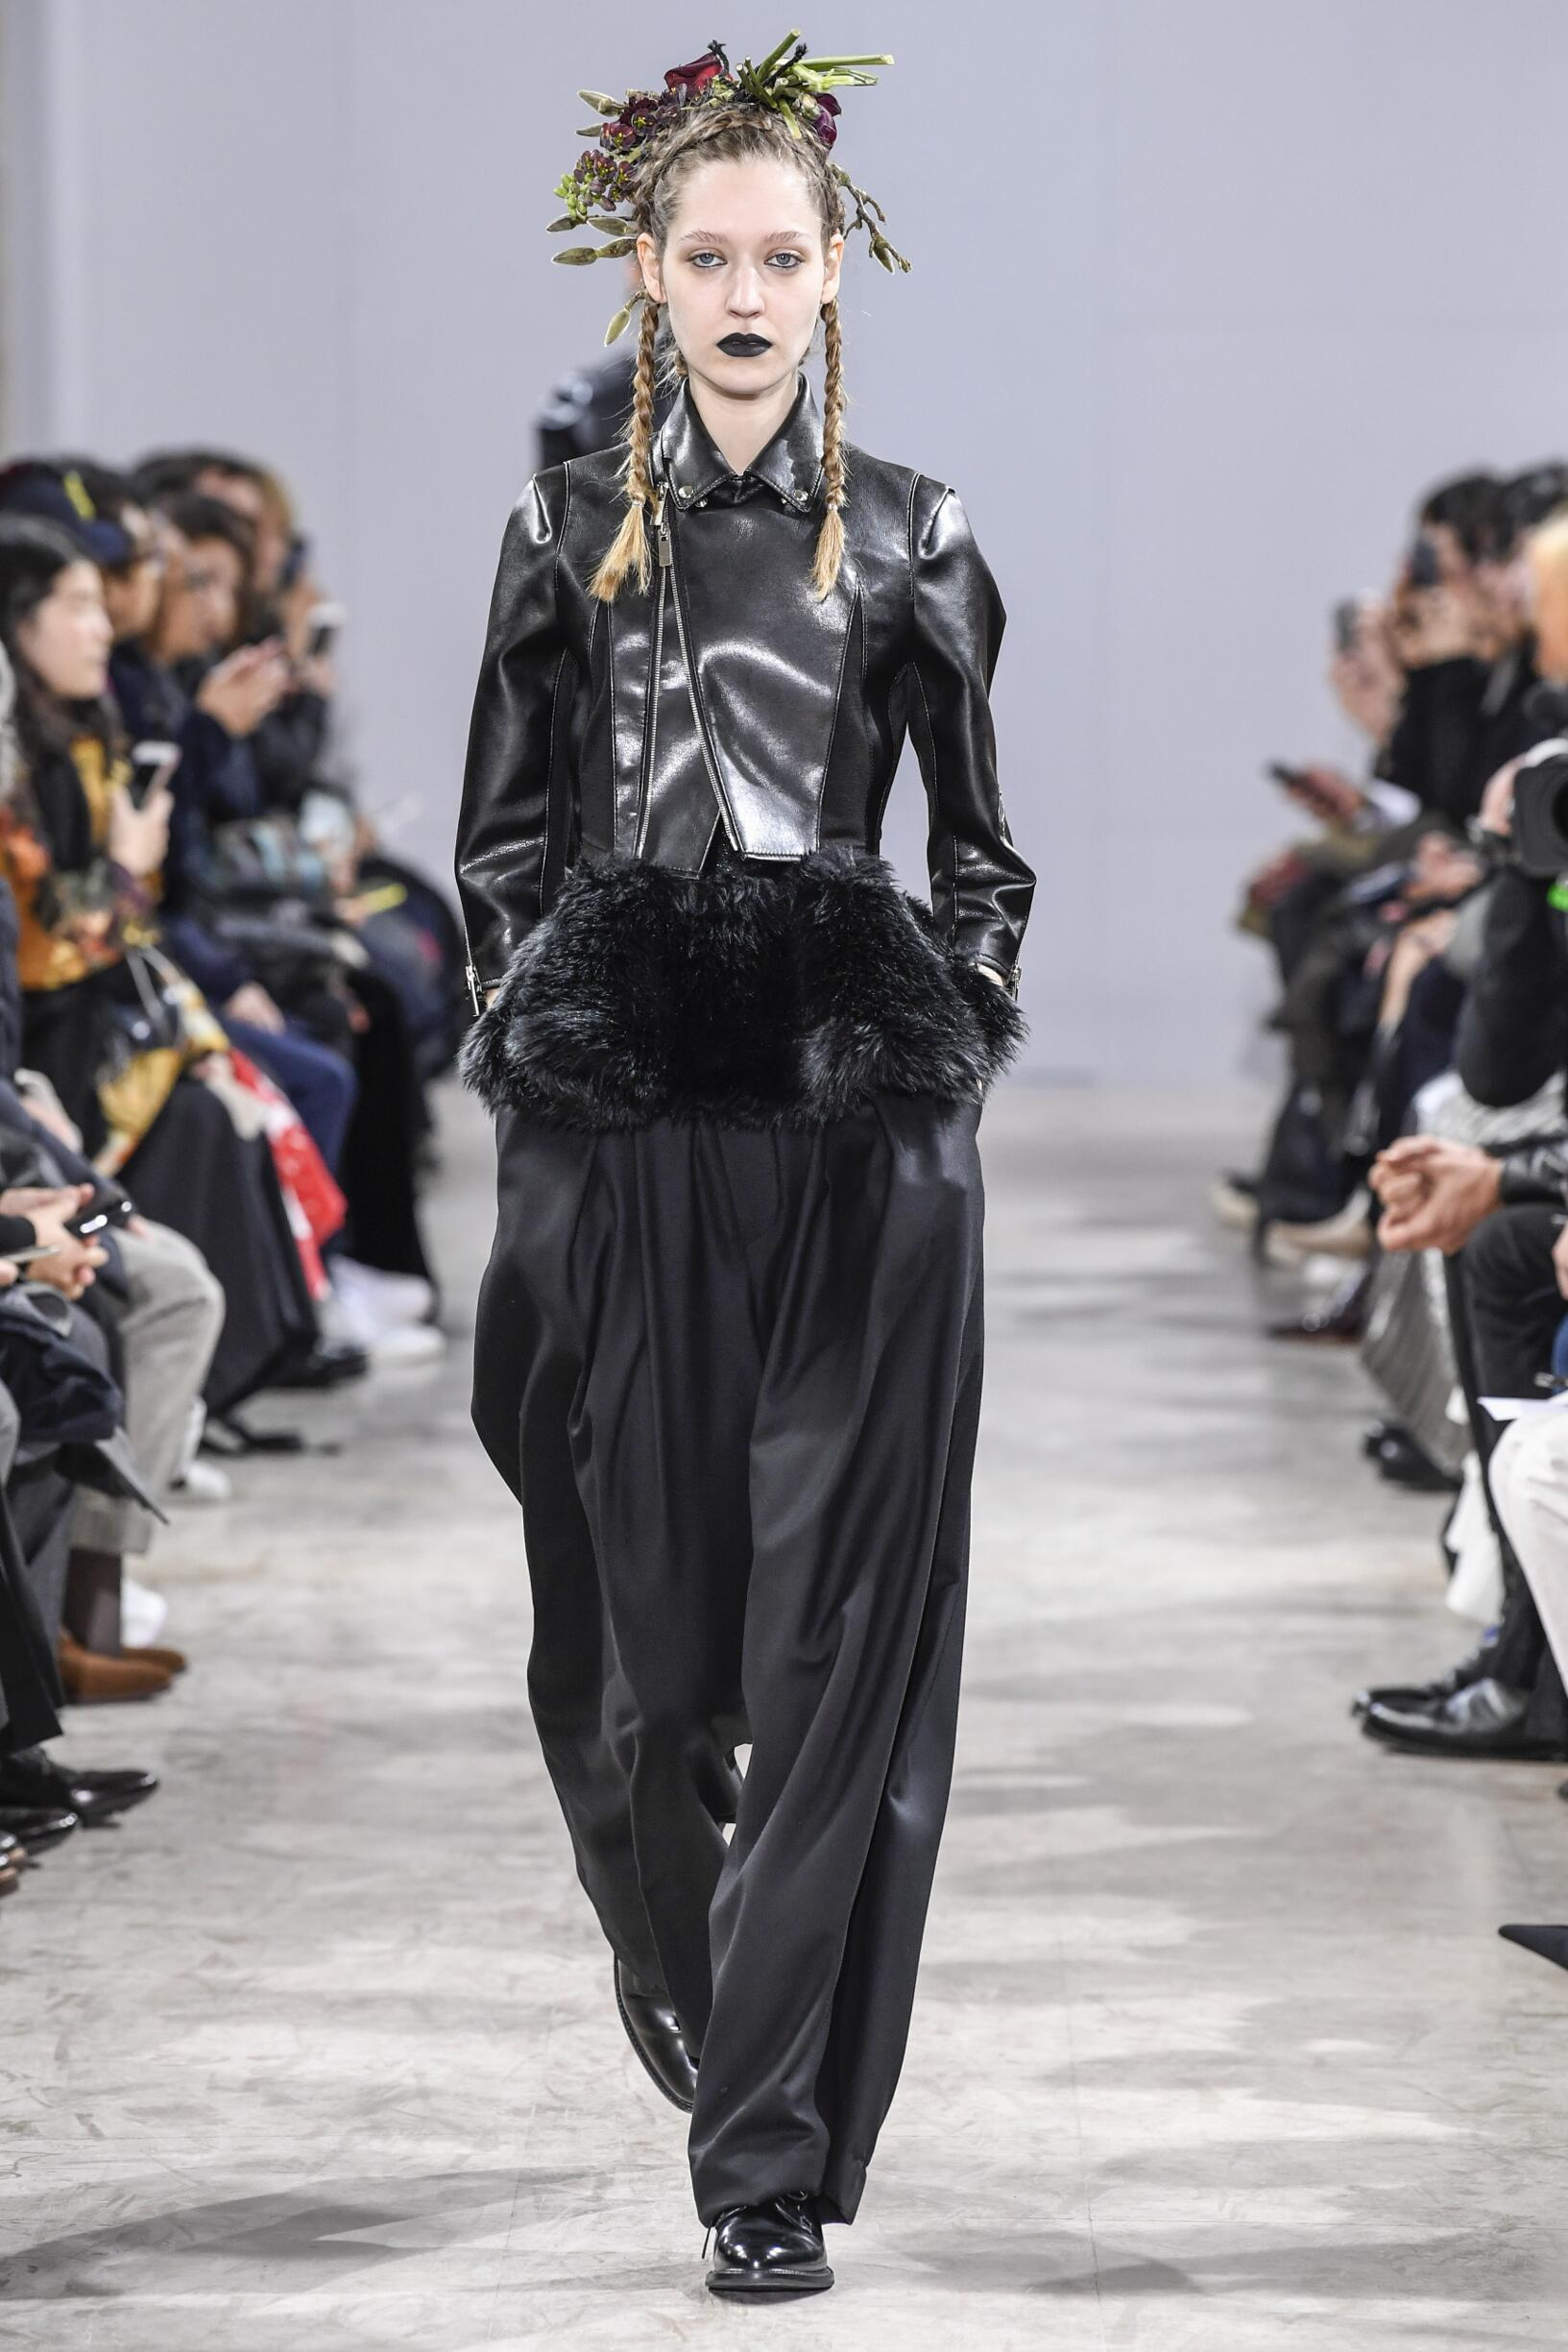 Woman Fall 2018 Fashion Trends Noir Kei Ninomiya